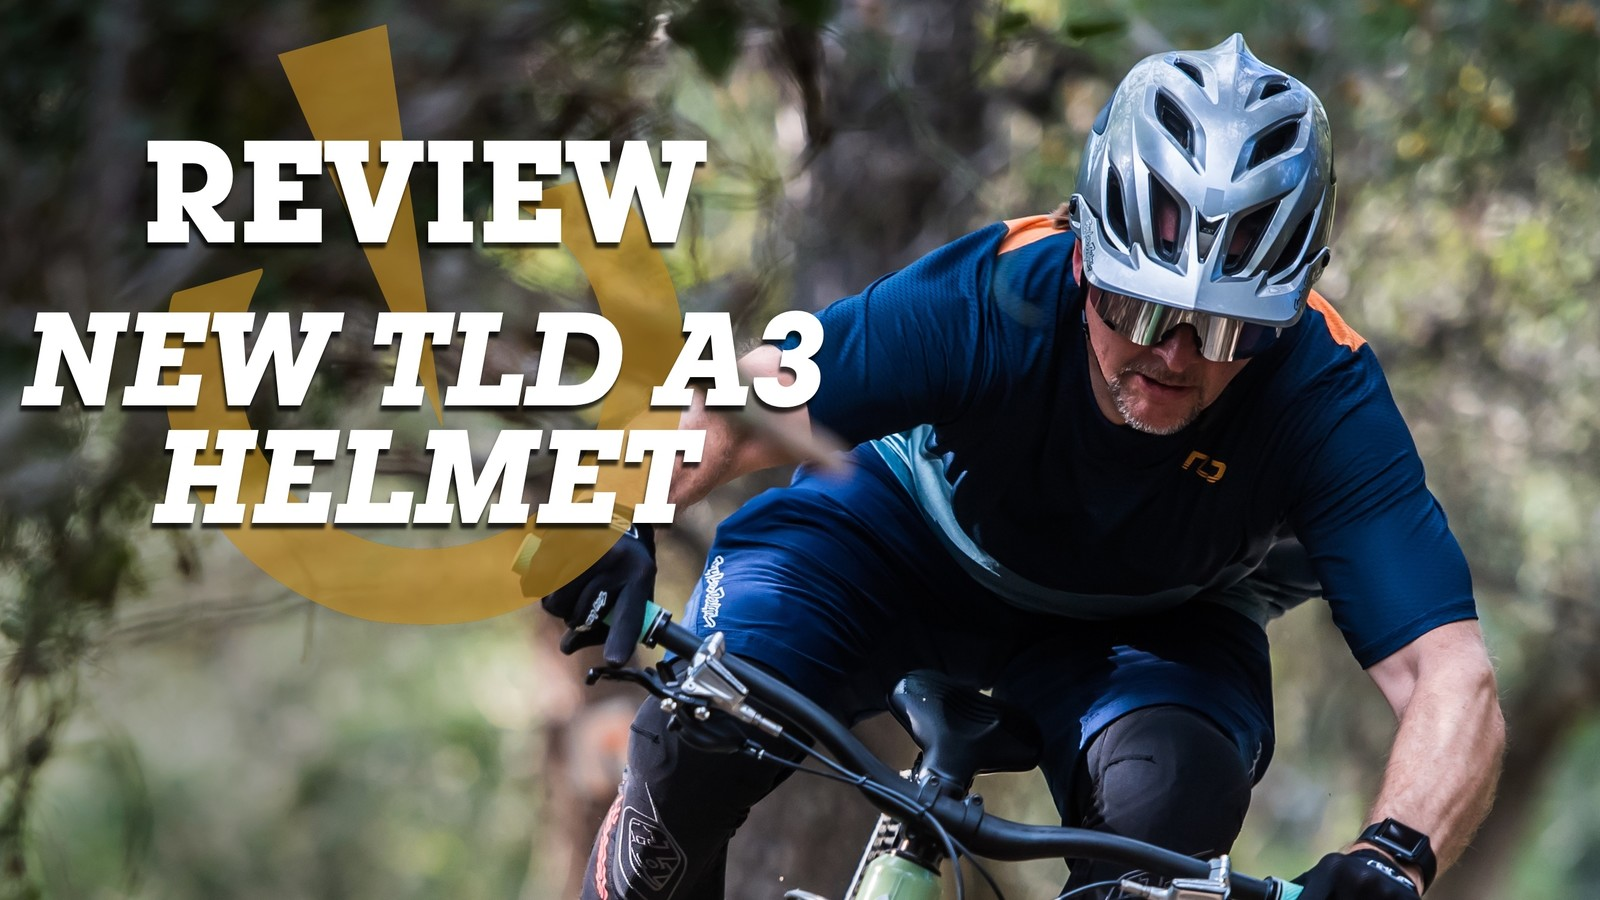 All-New Troy Lee Designs A3 MTB Trail Helmet Review